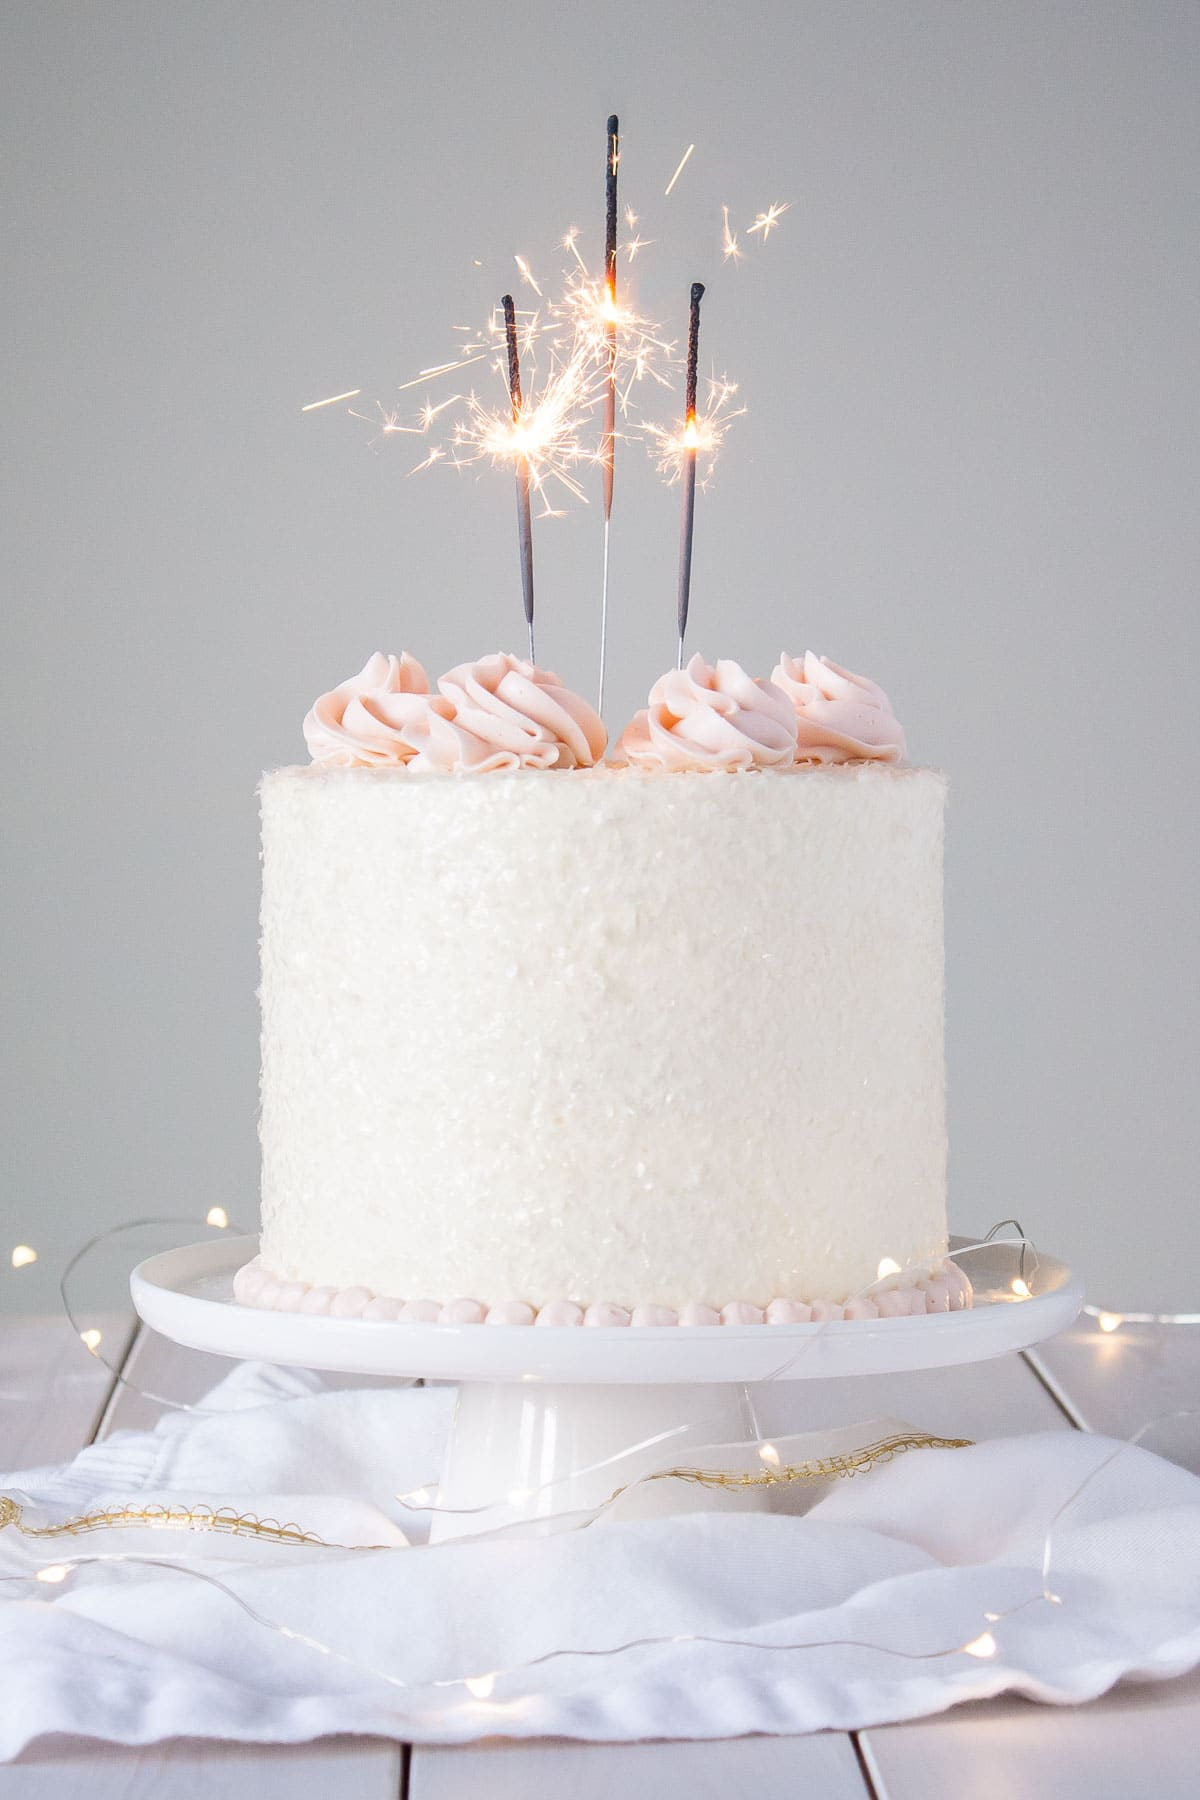 This Pink Champagne Cake Is The Perfect Way To Celebrate Any Occasion Or Holiday A Infused With Clic Vanilla Ercream